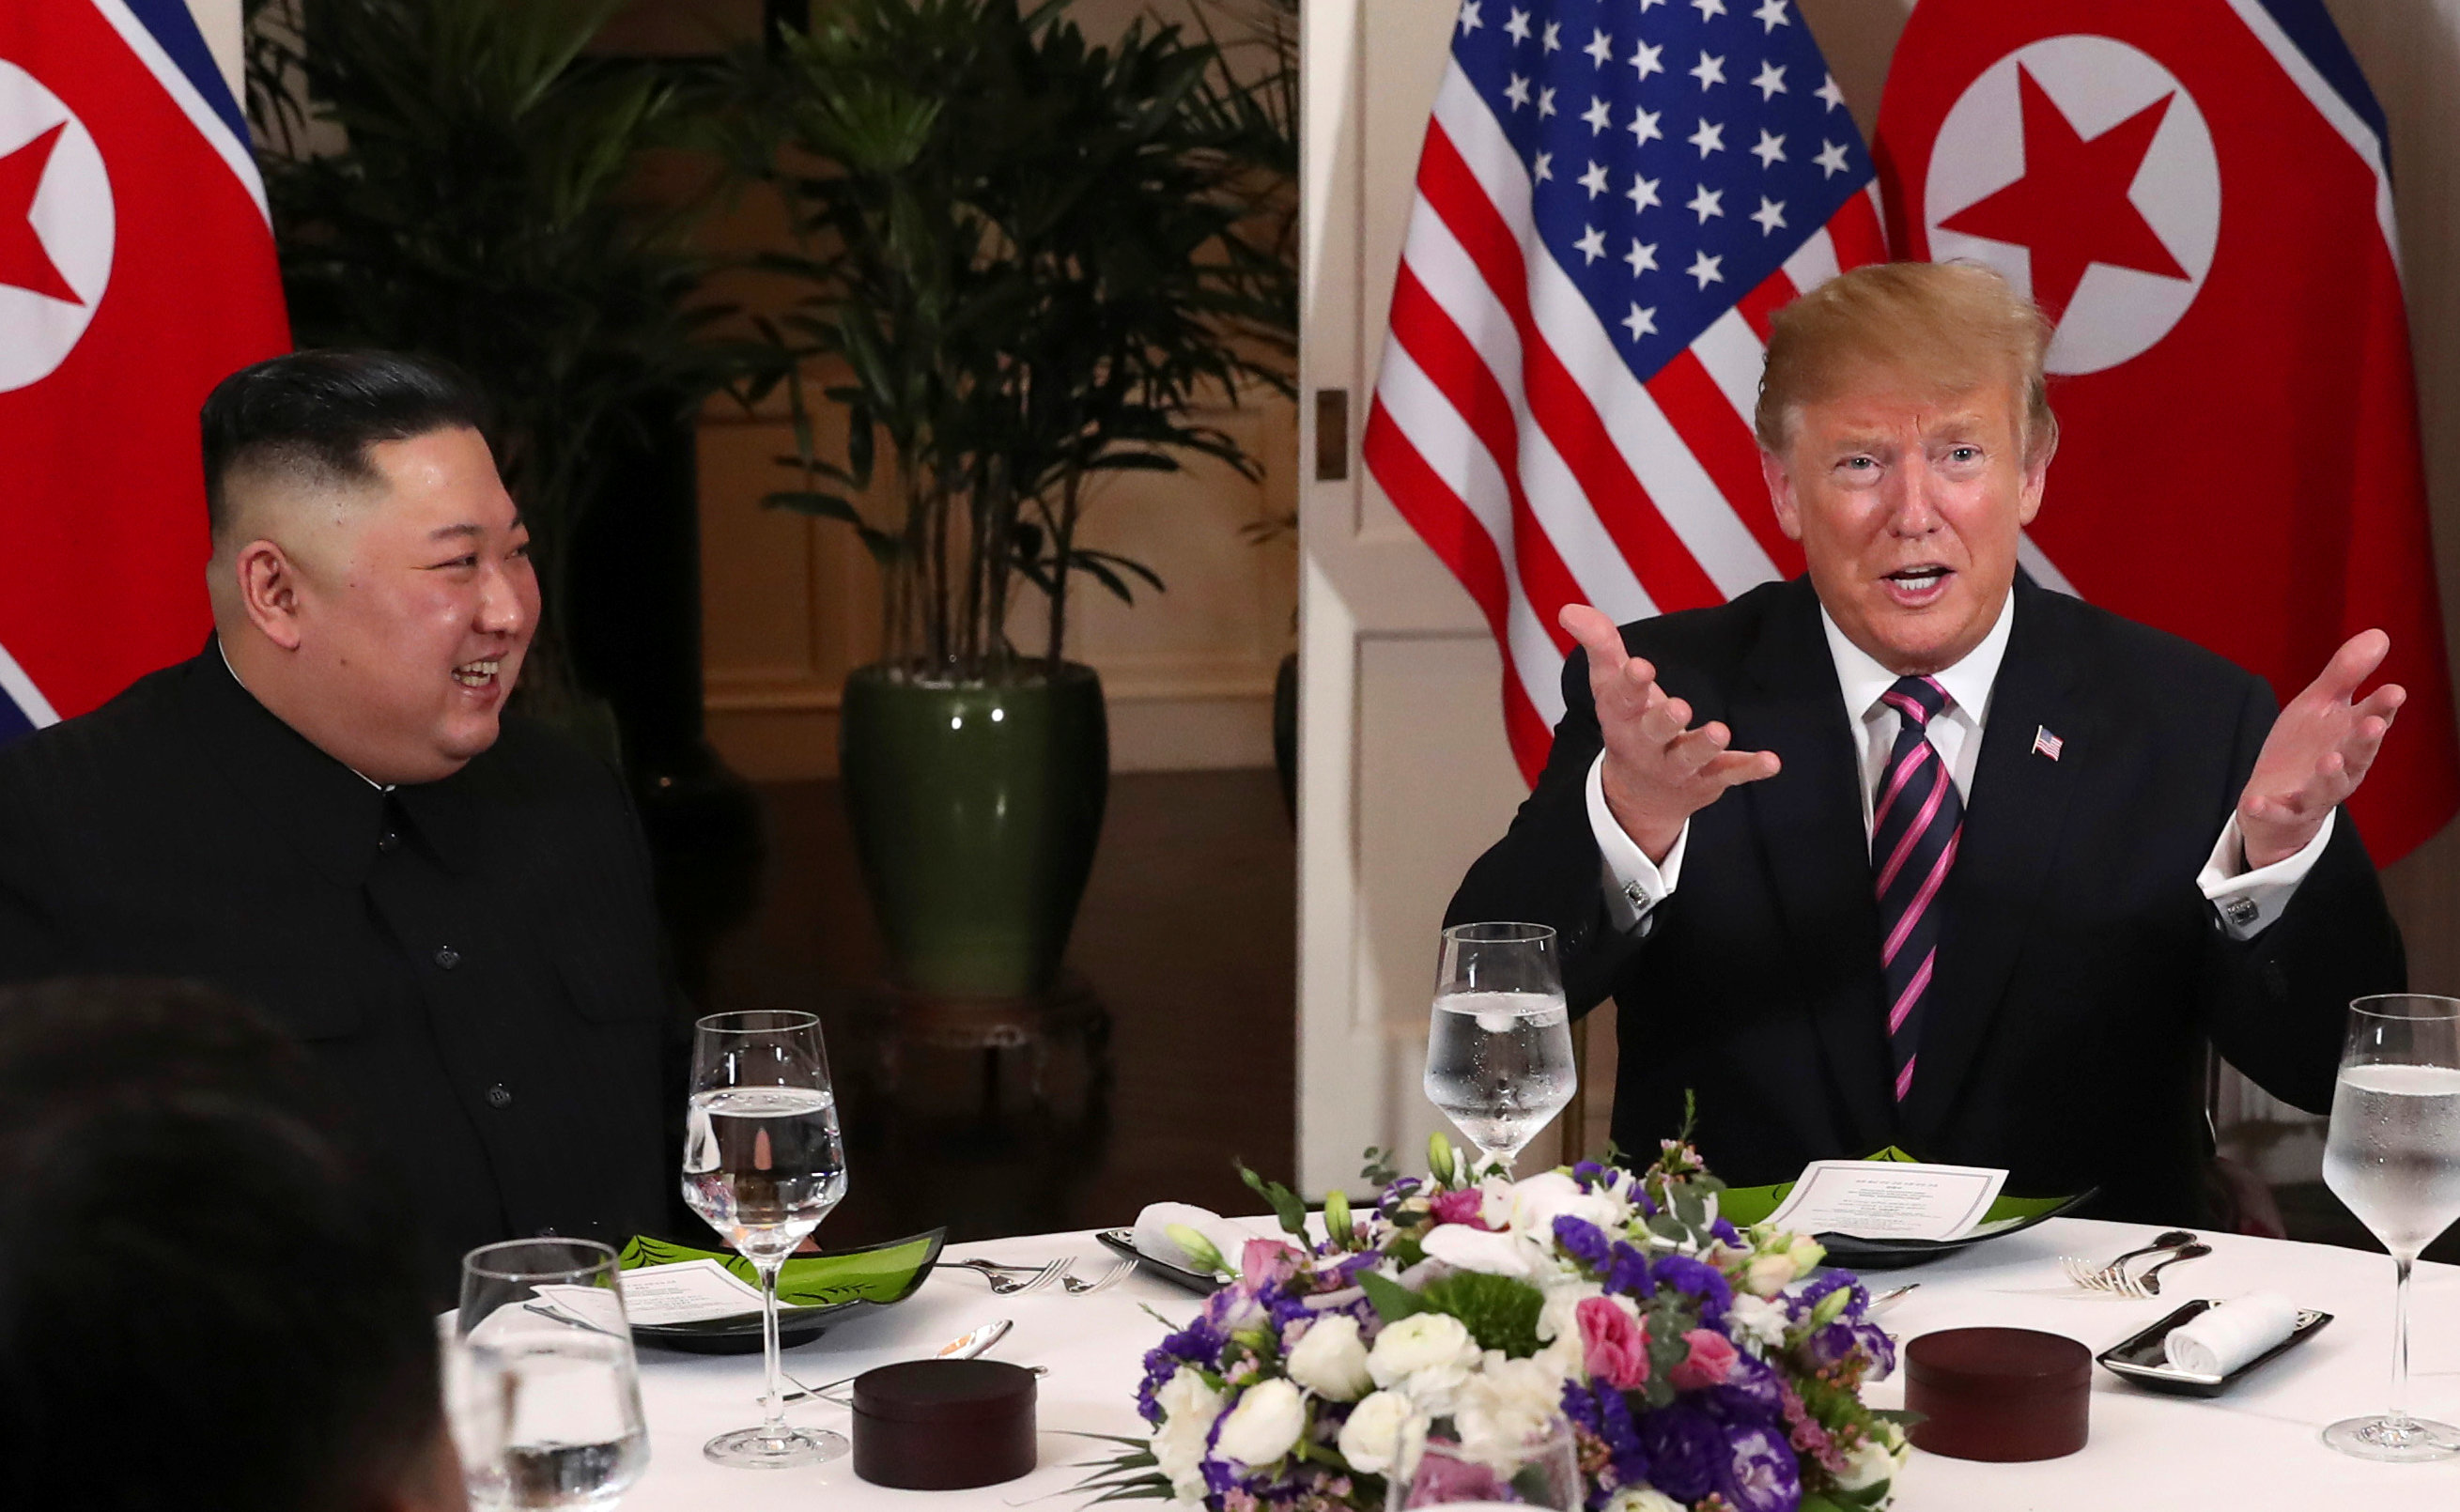 U.S. President Donald Trump gestures as he and North Korean leader Kim Jong Un sit down for a dinner during the second U.S.-North Korea summit at the Metropole Hotel in Hanoi, Vietnam February 27, 2019. Photo: Reuters